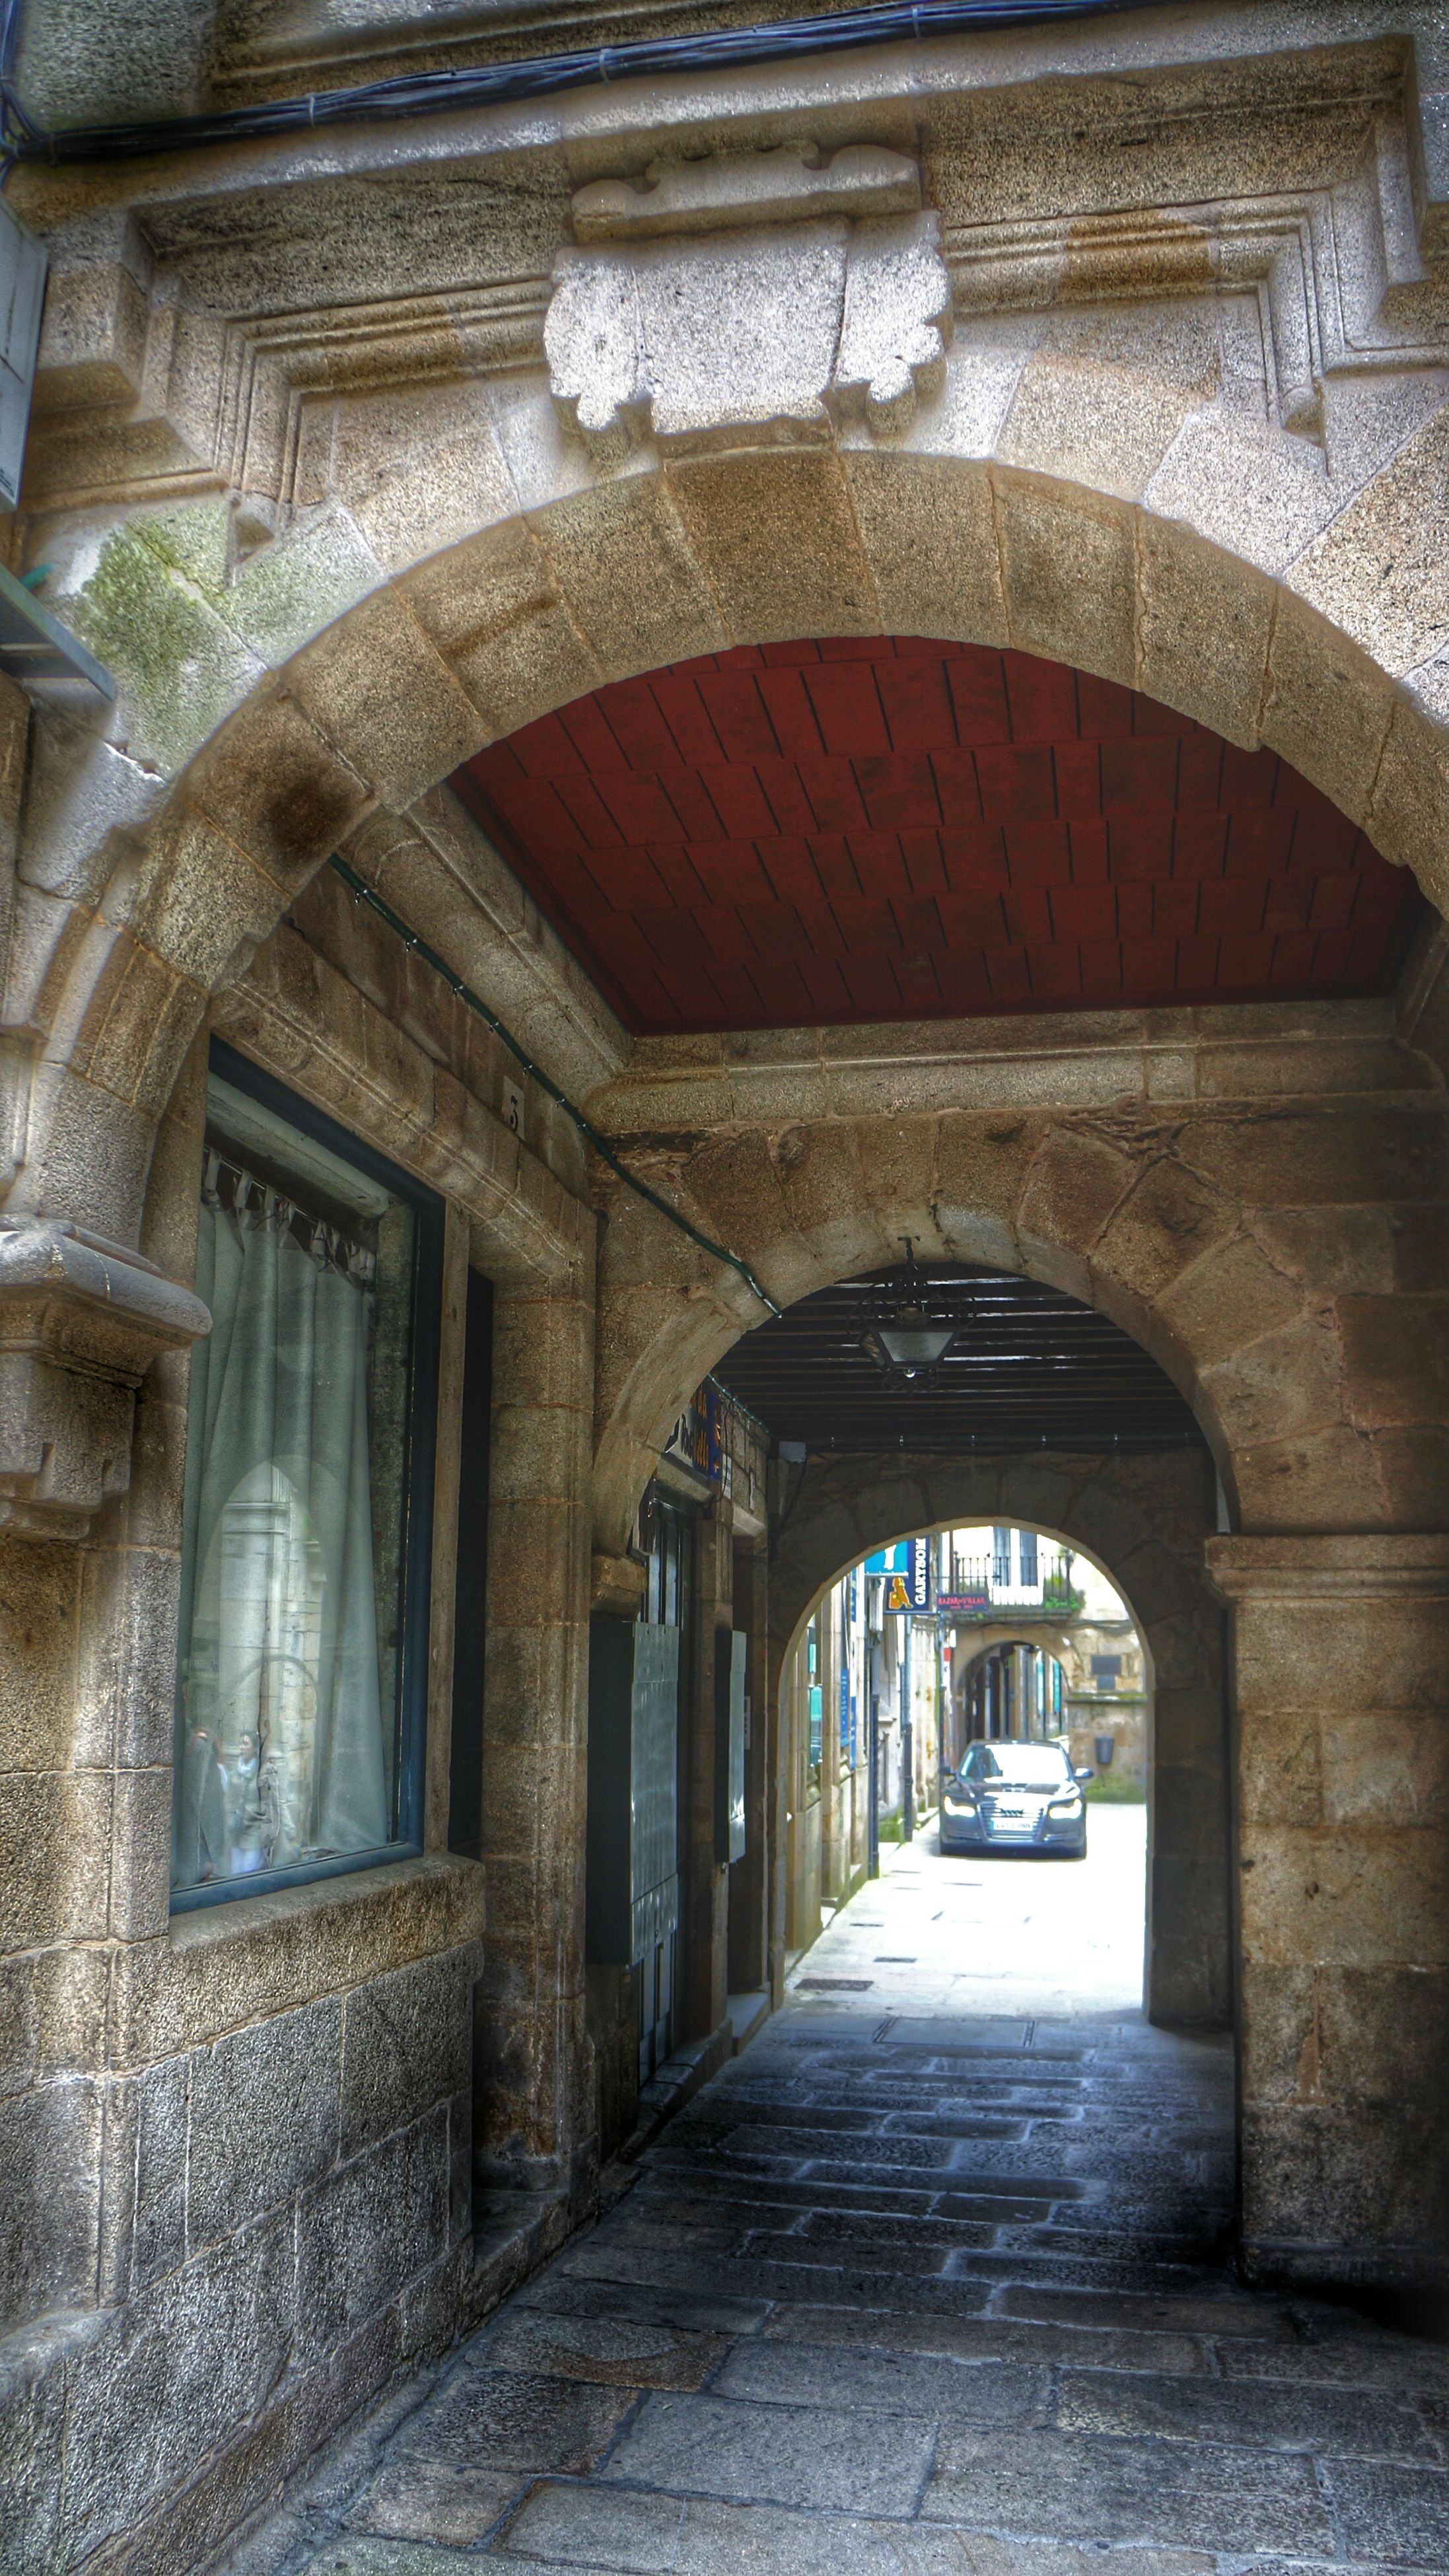 architecture, built structure, arch, building exterior, the way forward, door, archway, entrance, cobblestone, old, building, corridor, indoors, empty, walkway, diminishing perspective, narrow, house, day, no people